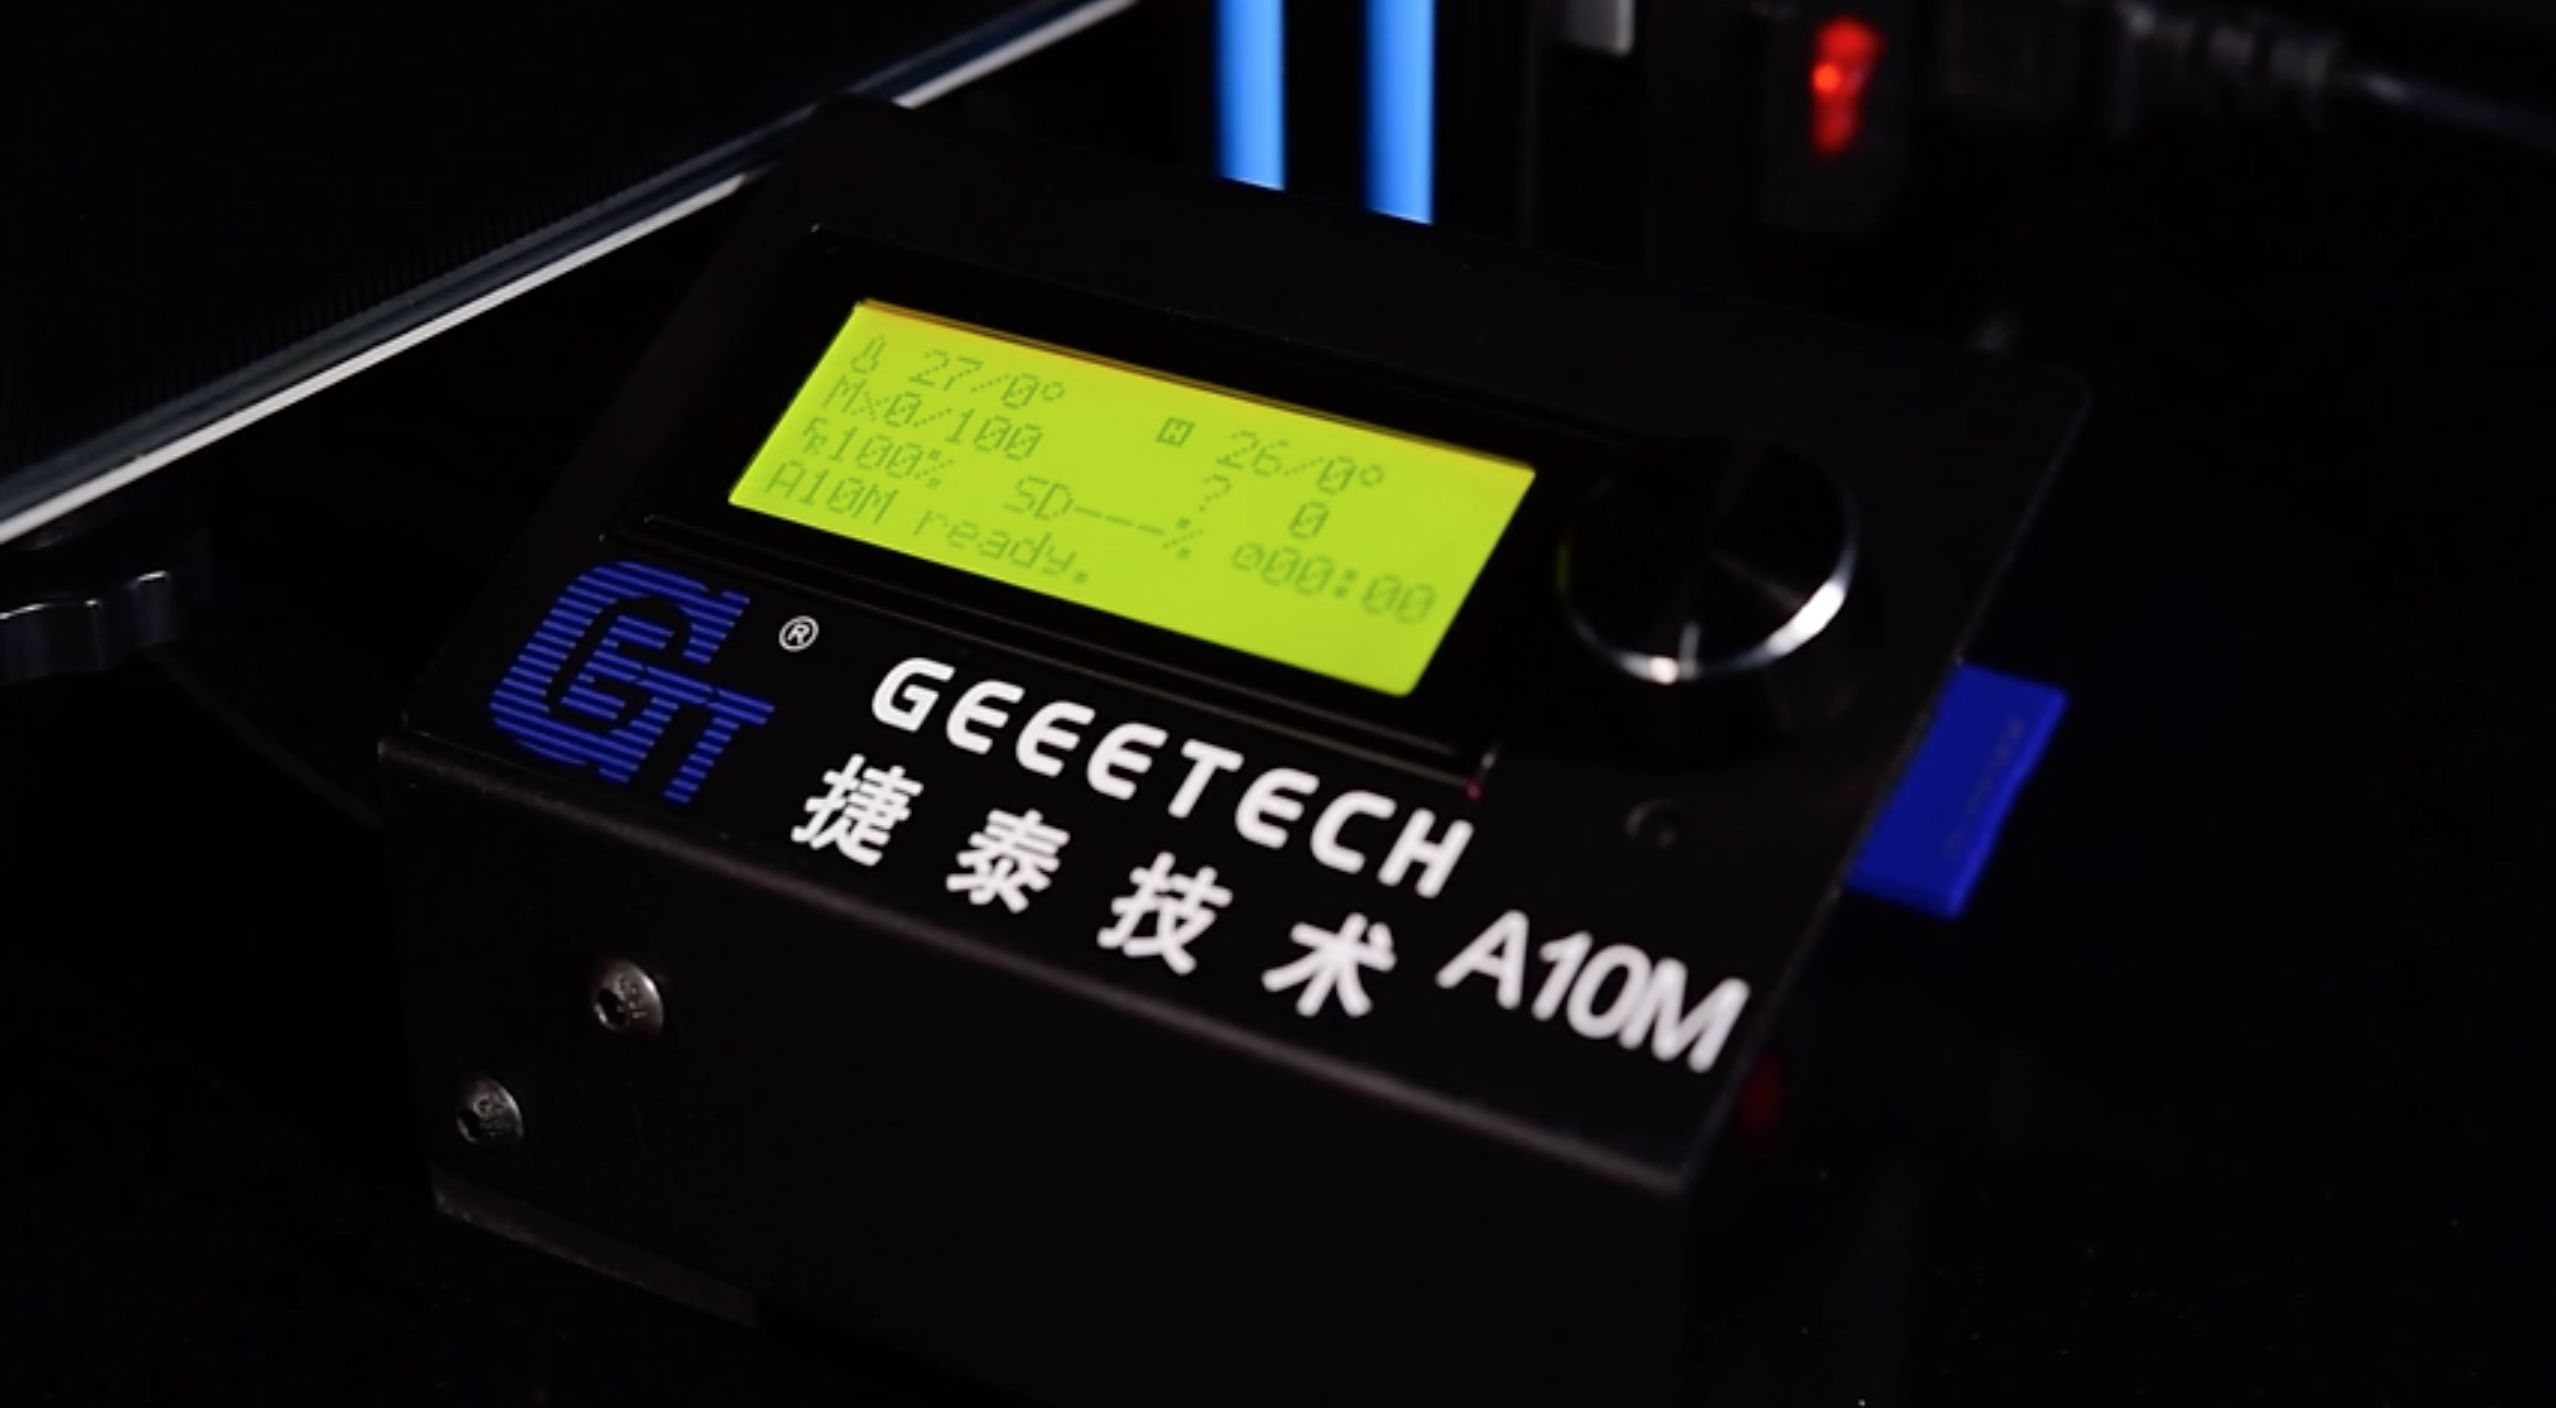 2019 Geeetech A10M – Review the Specs of this 3D Printer | All3DP